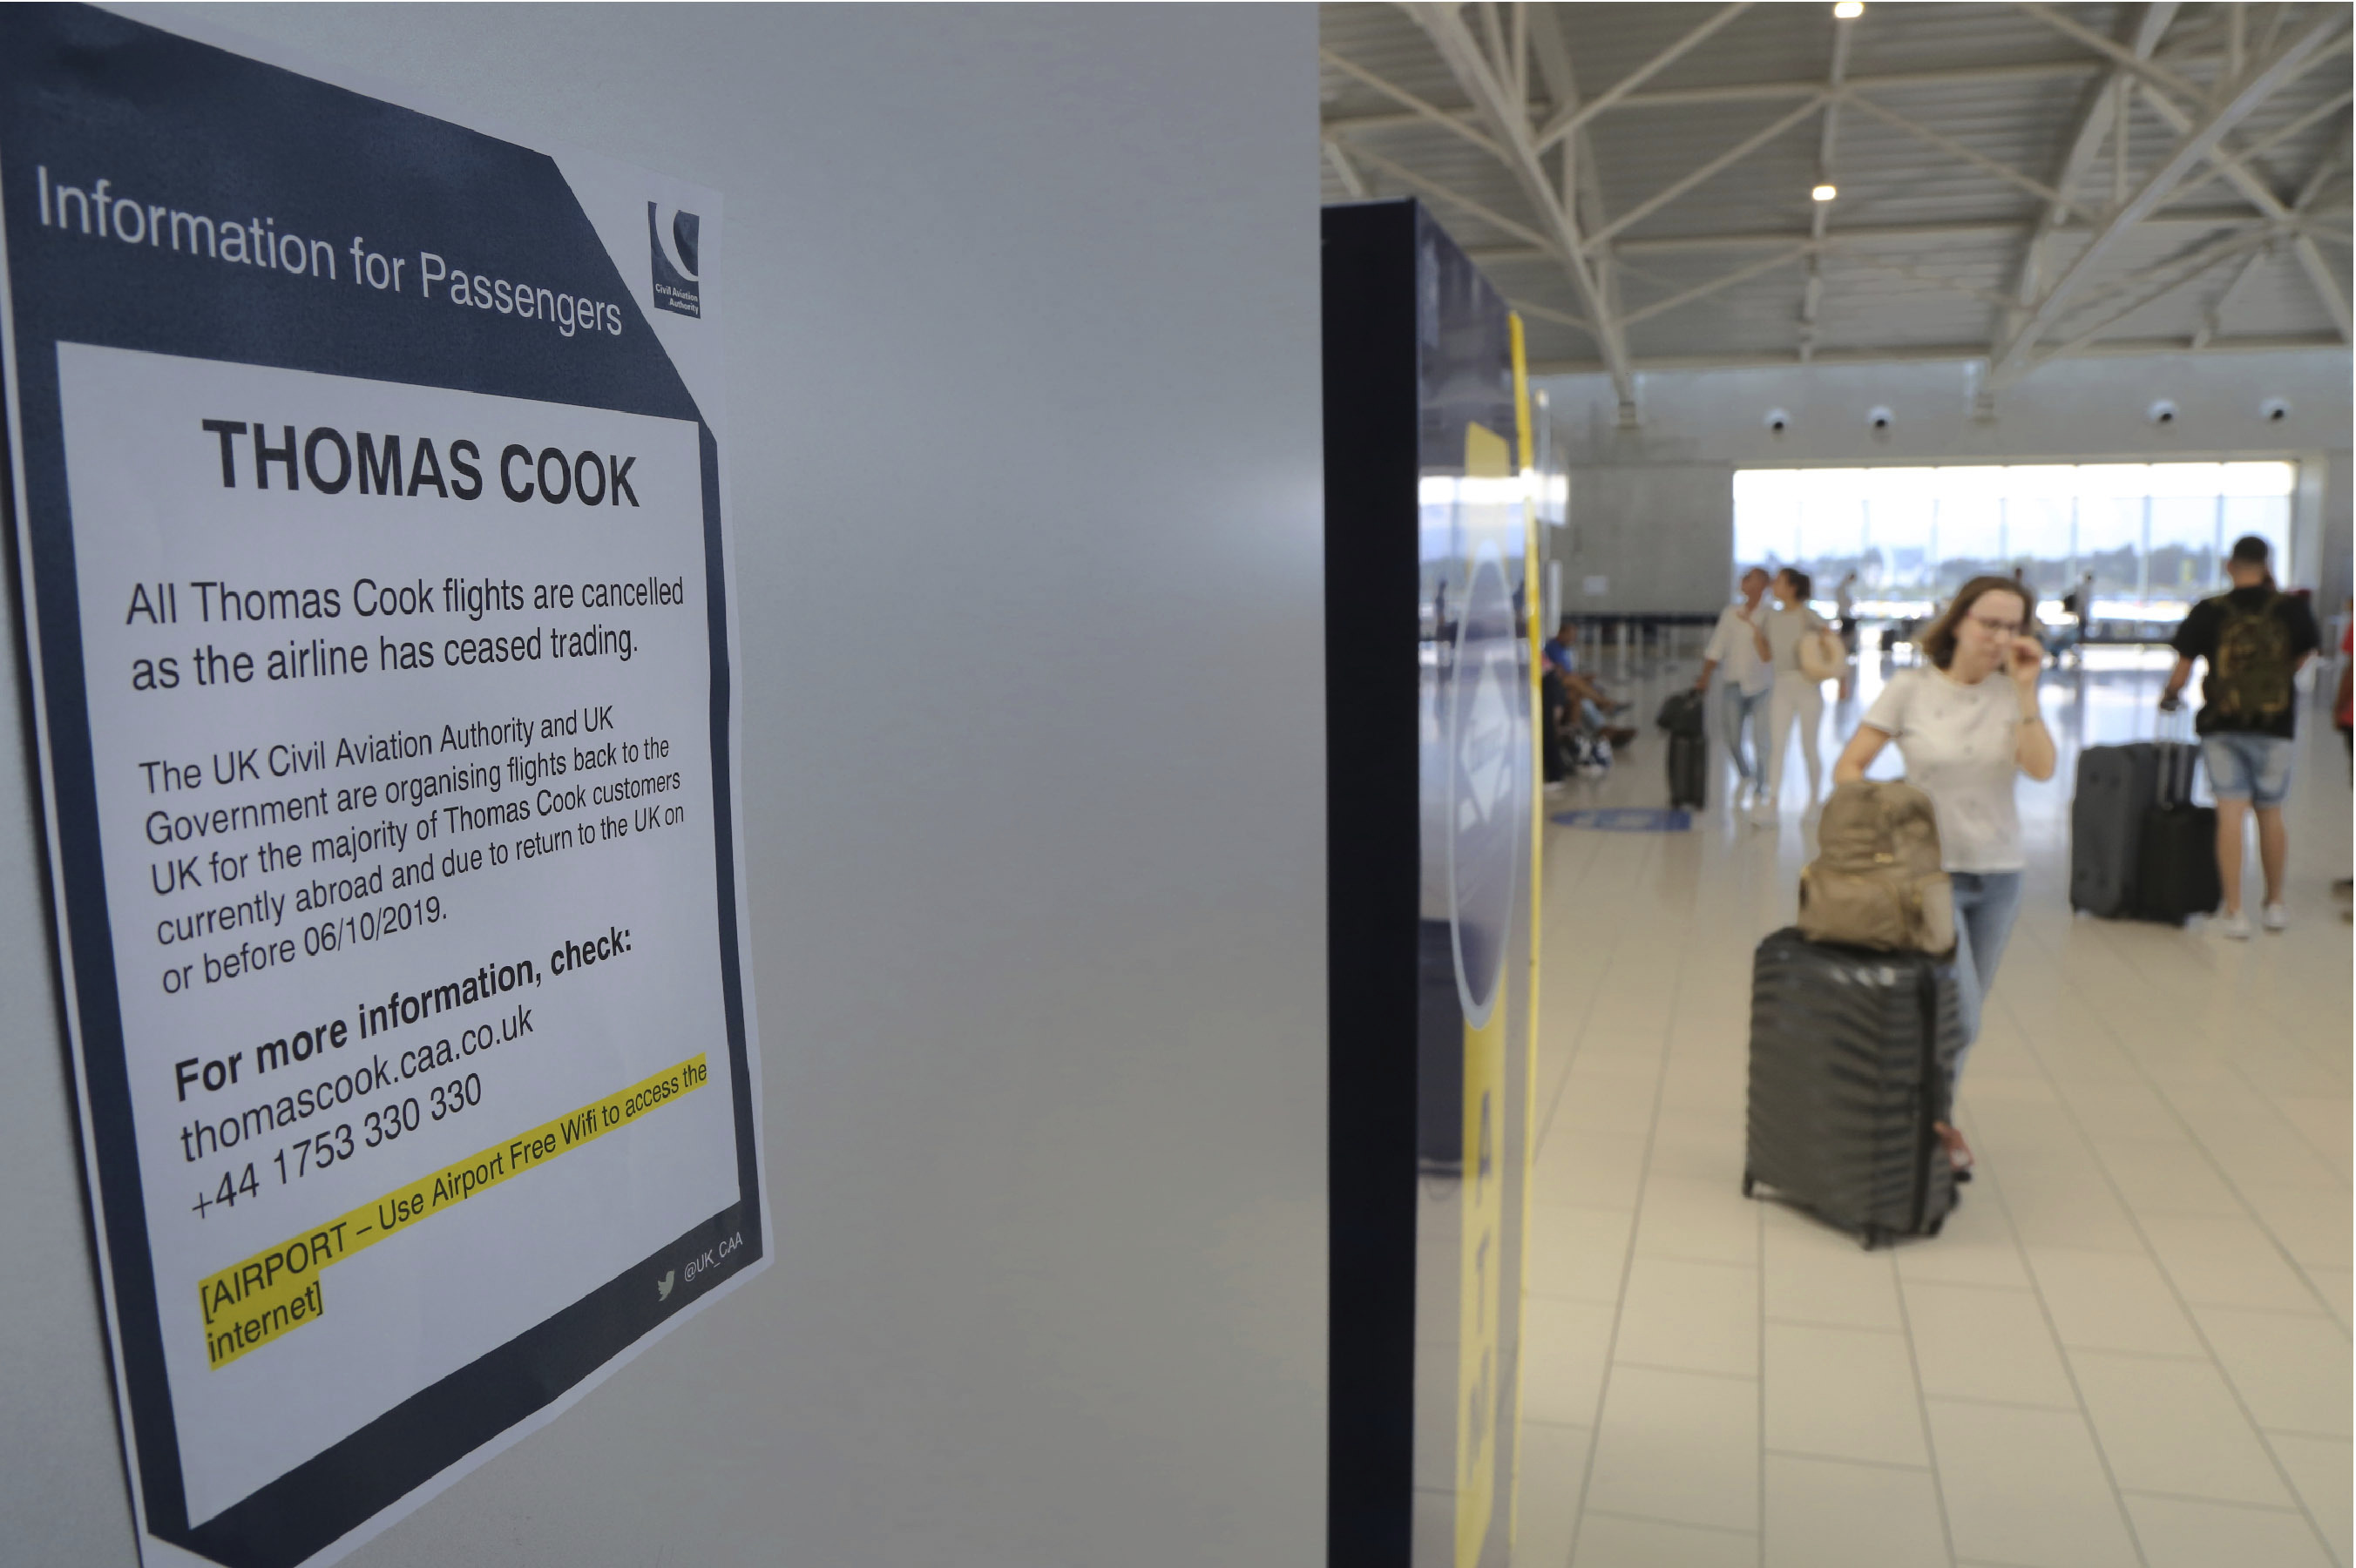 The Latest: British PM questions Thomas Cook bosses pay